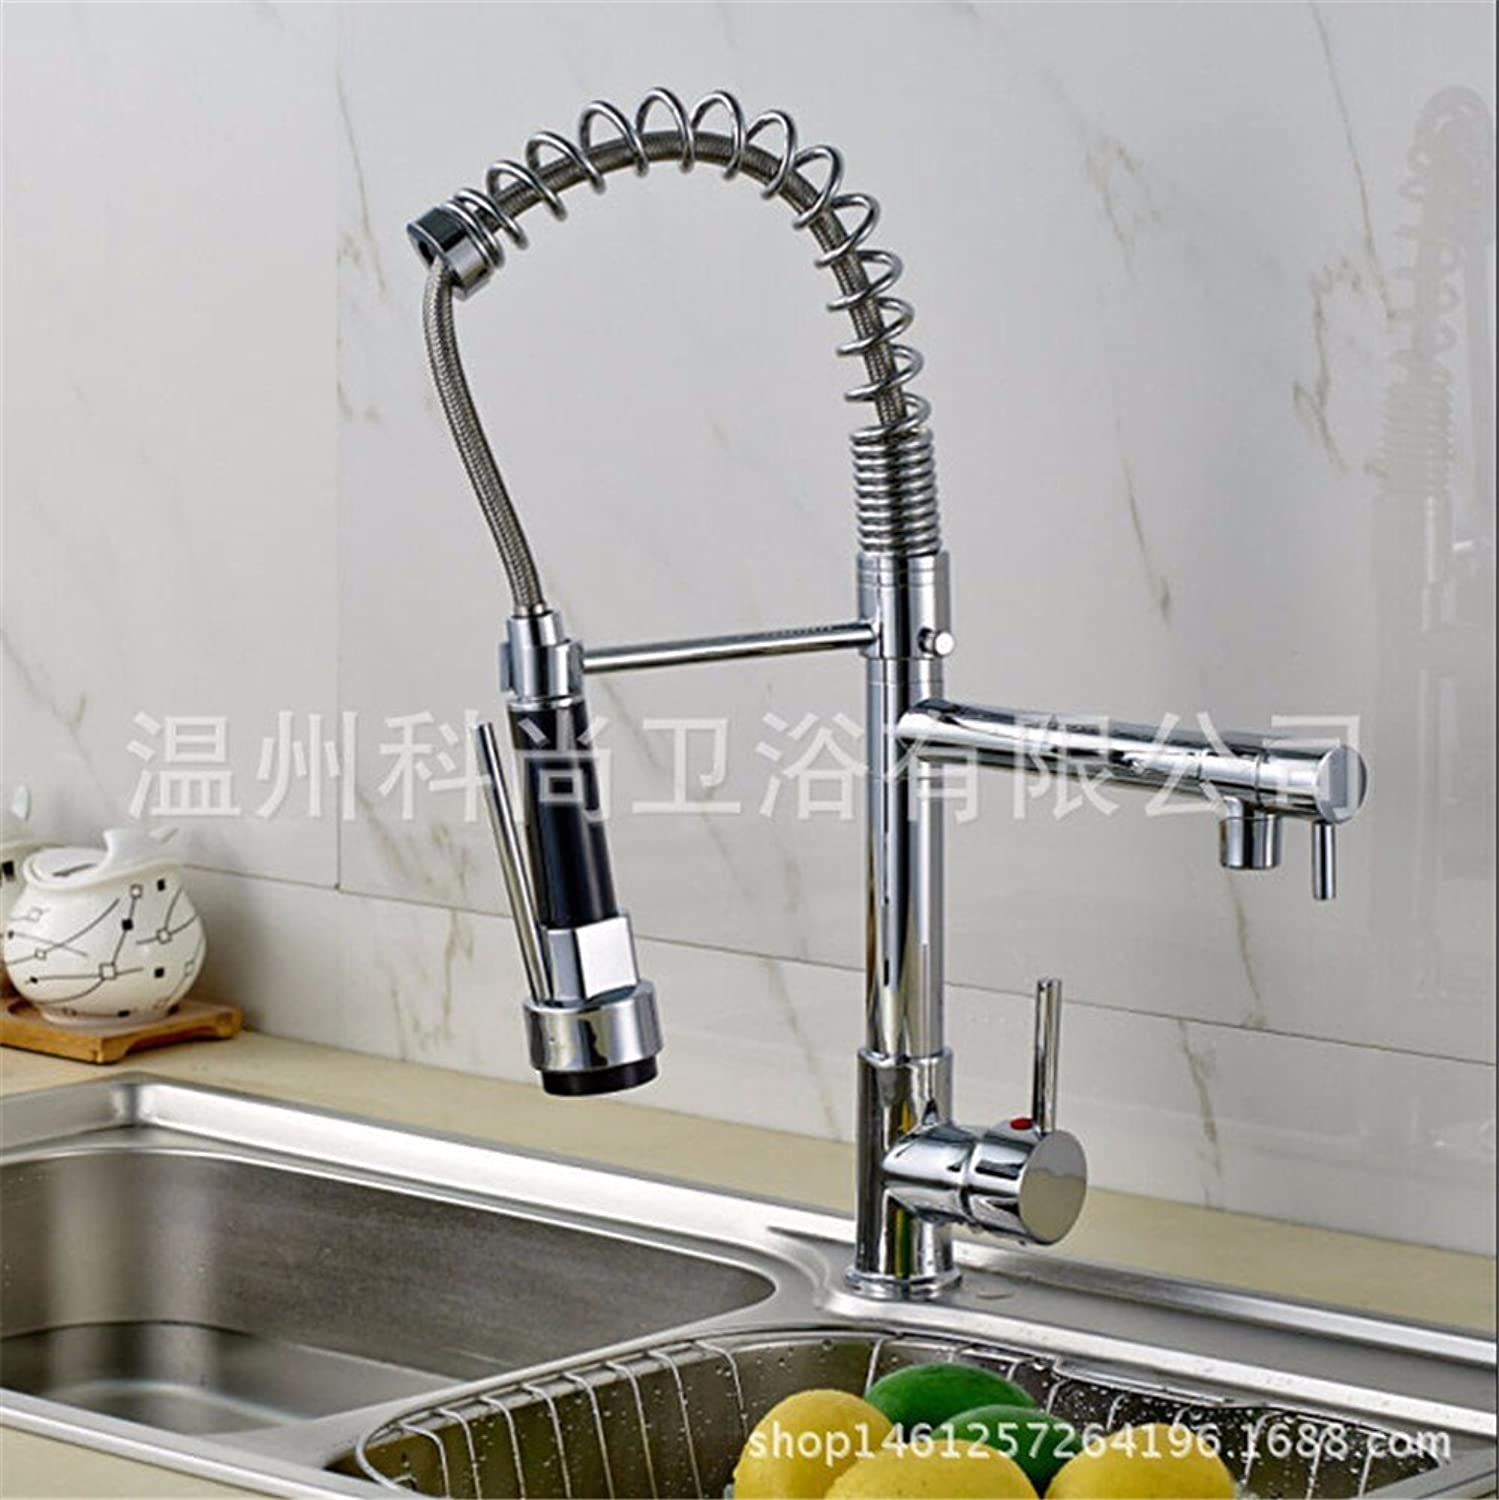 Bijjaladeva Antique Bathroom Sink Vessel Faucet Basin Mixer Tap The LED light cuisine with a wash basin sink faucet kitchen spring redary Mixer